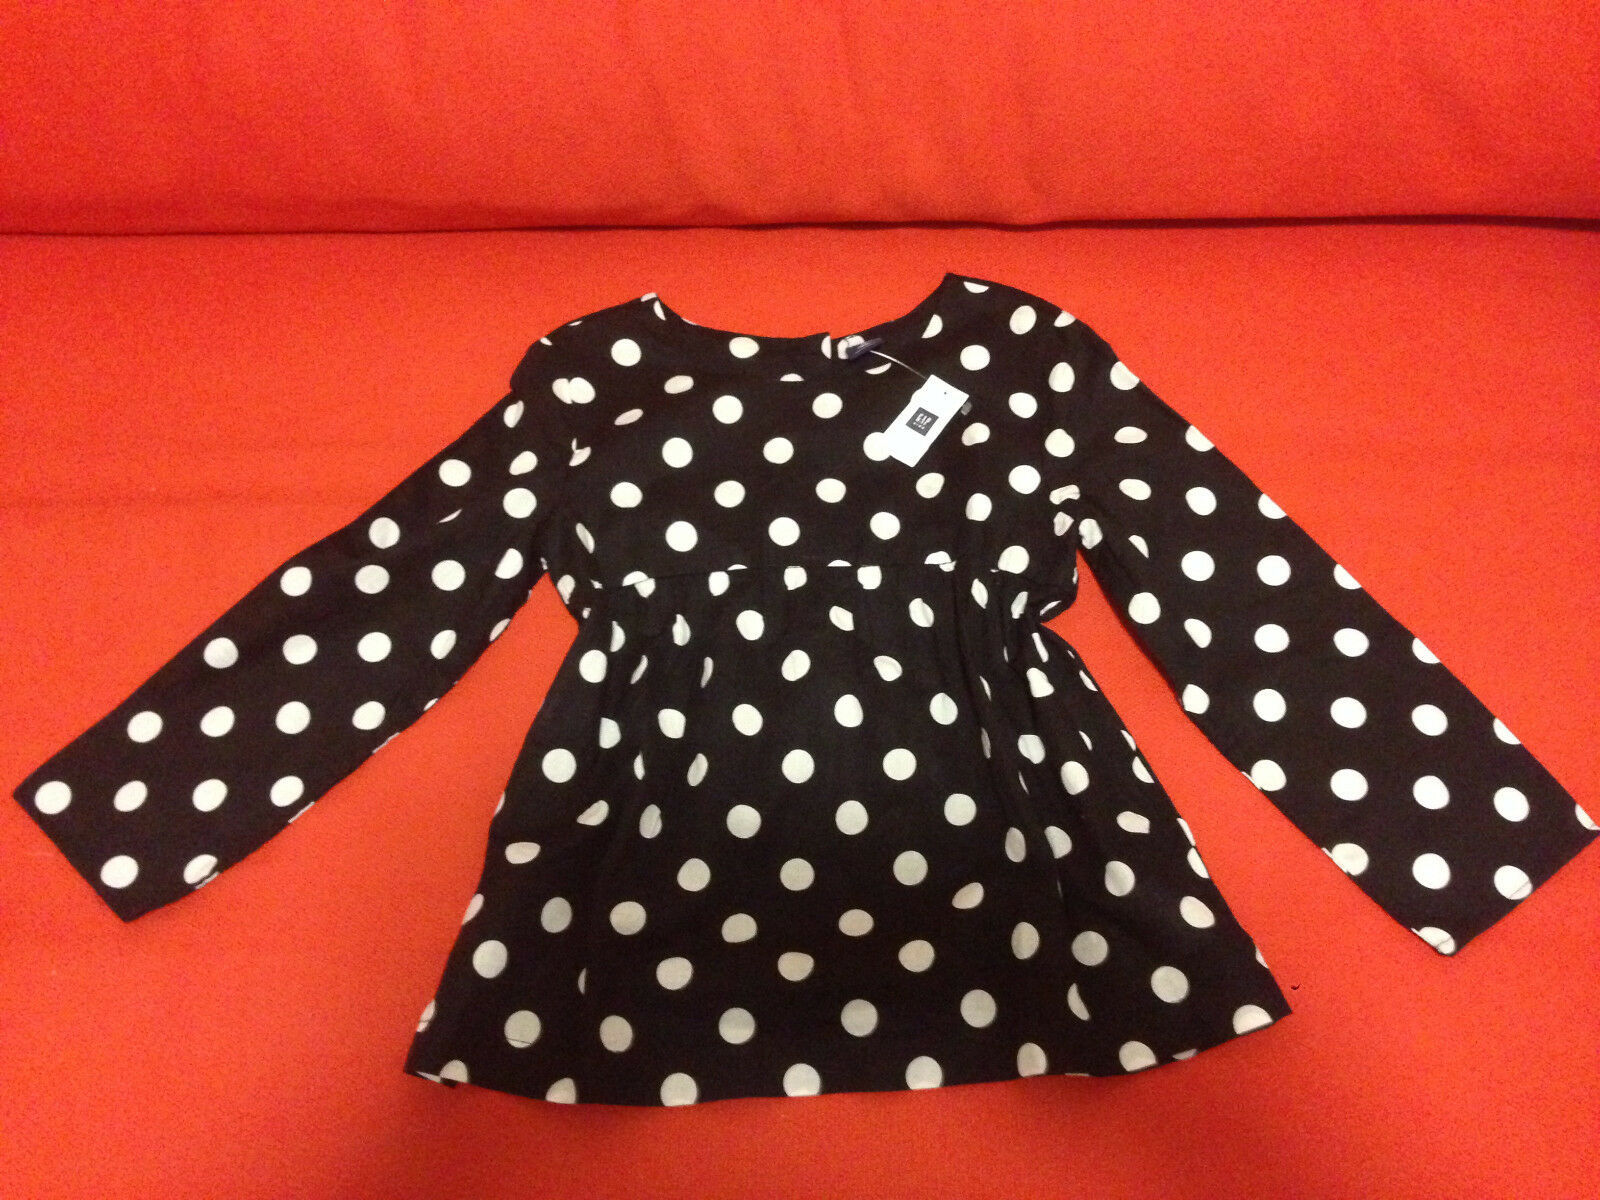 GAP Kids Girls Blouse Top 12 Babydoll Black White Polka Dot Long Sleeve Cotton